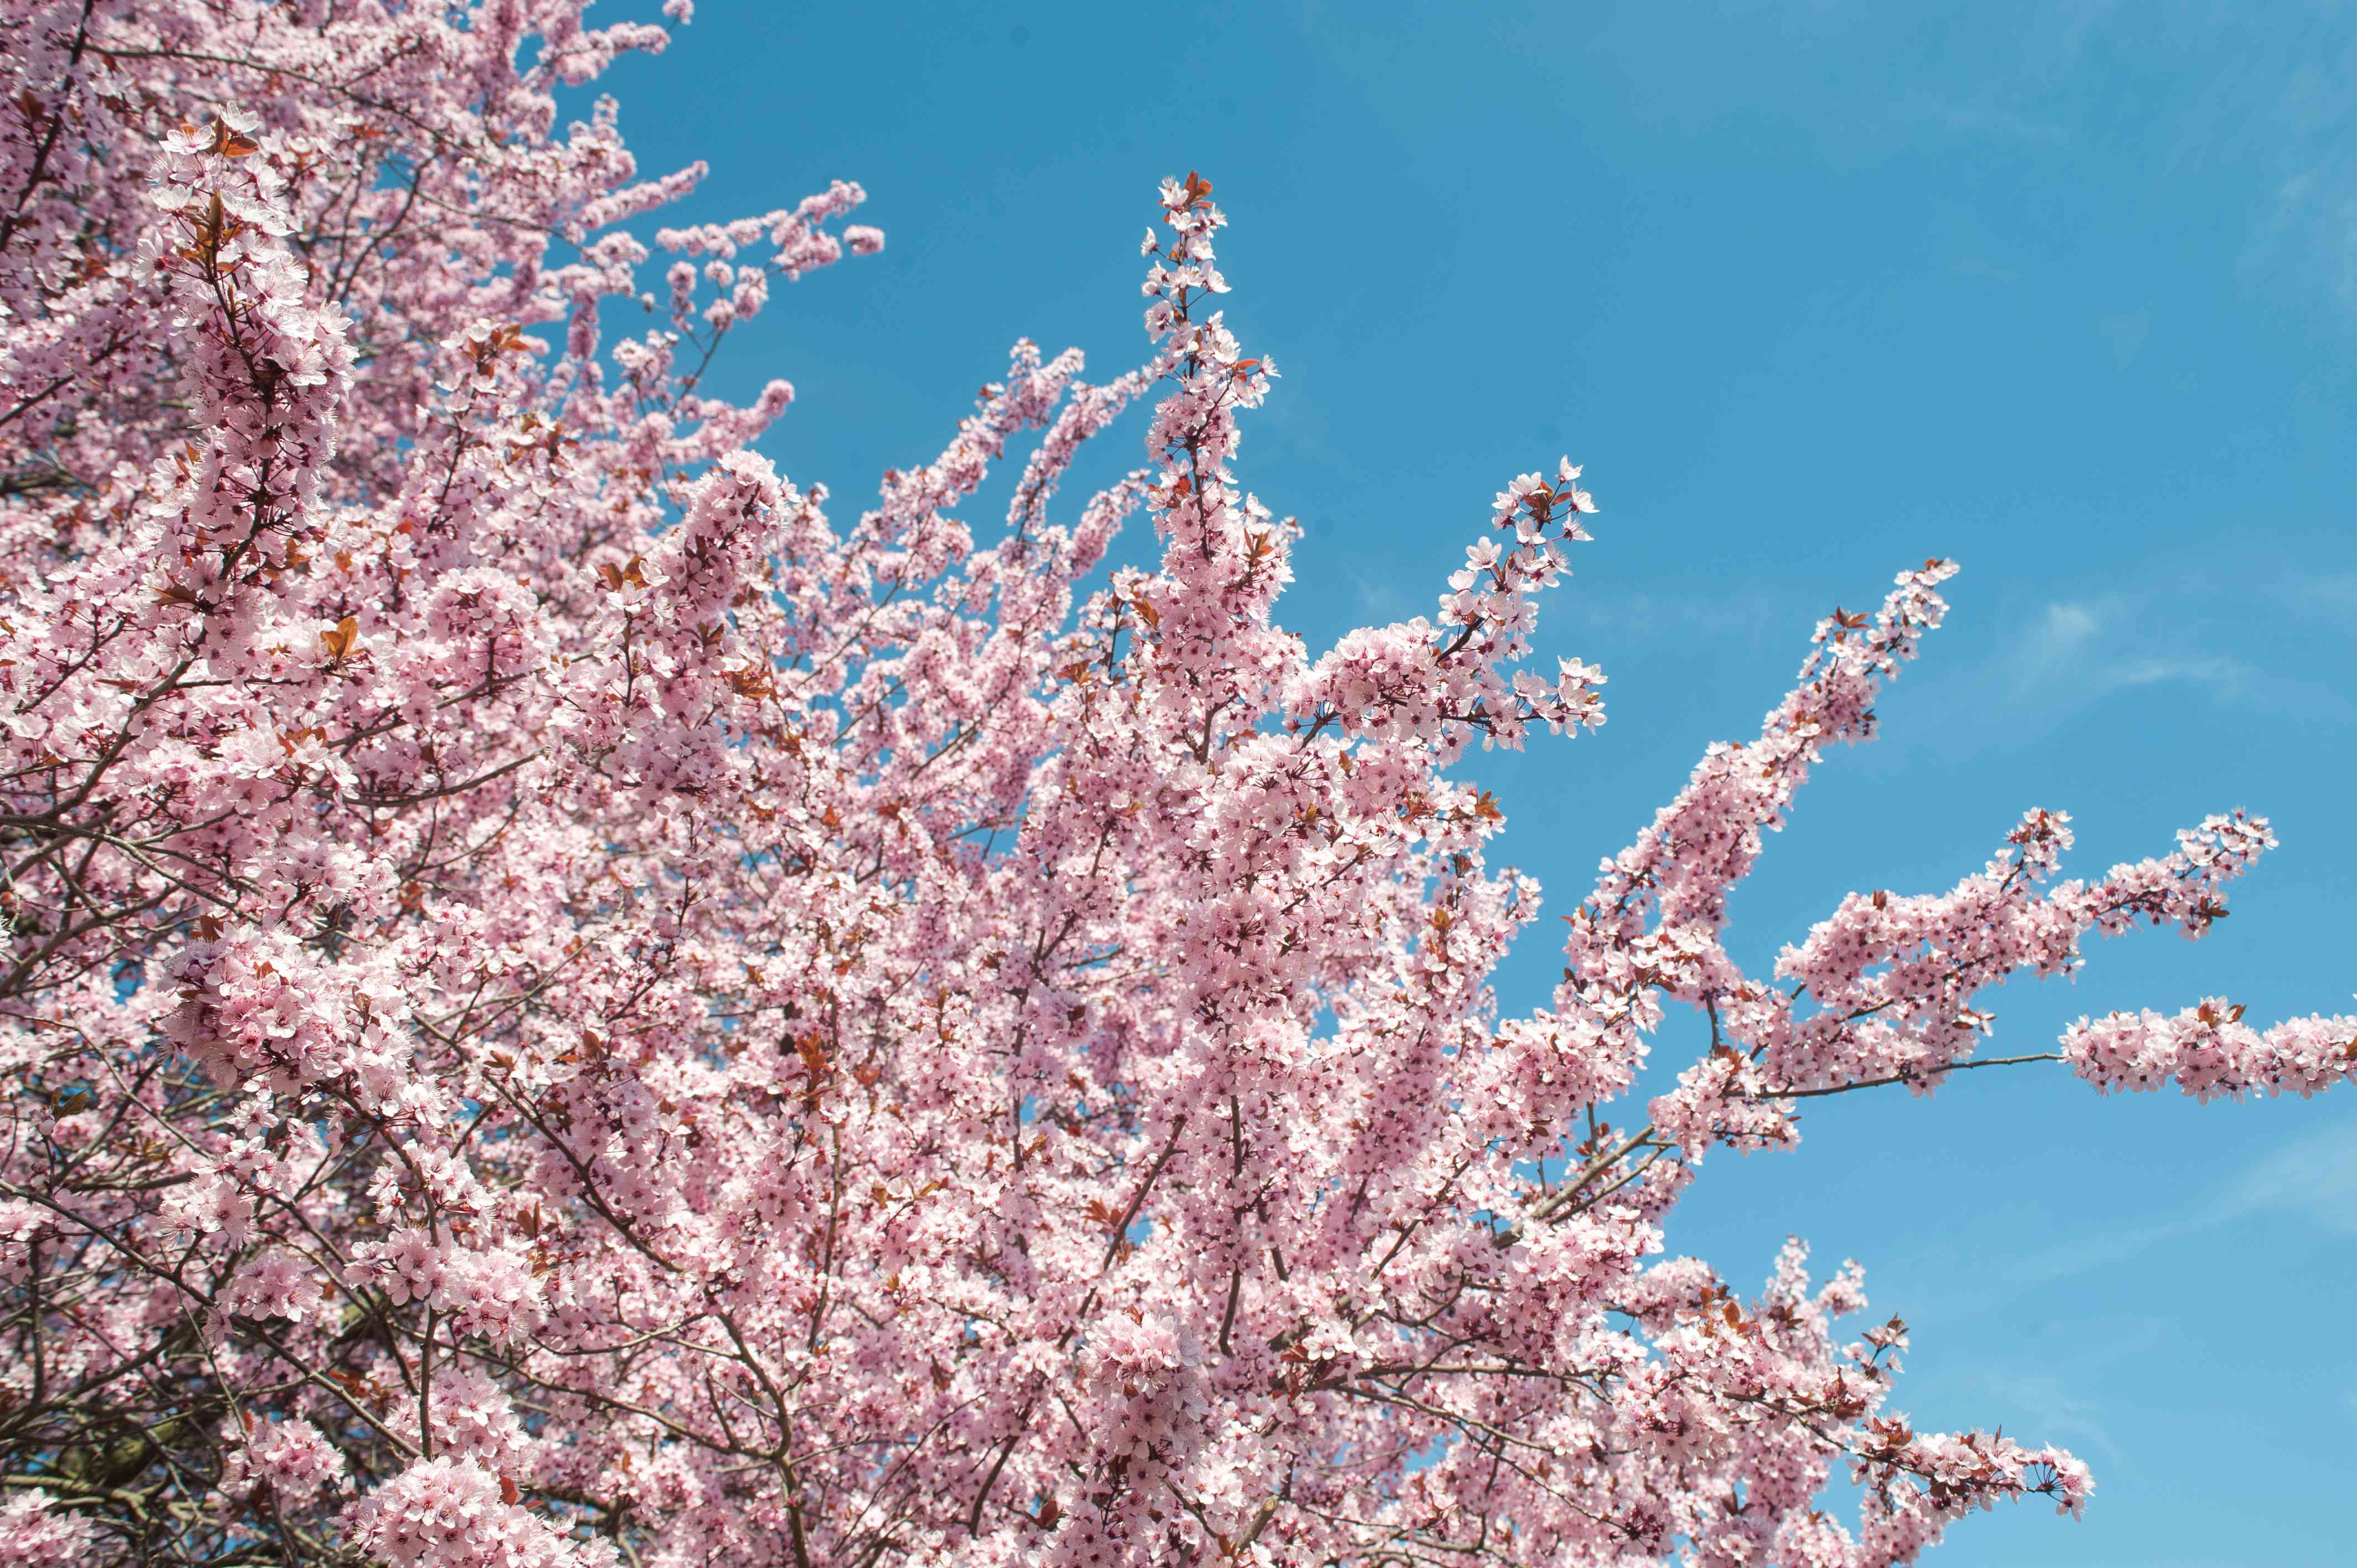 Purple leaf sand cherry tree branches with pink flowers against blue sky